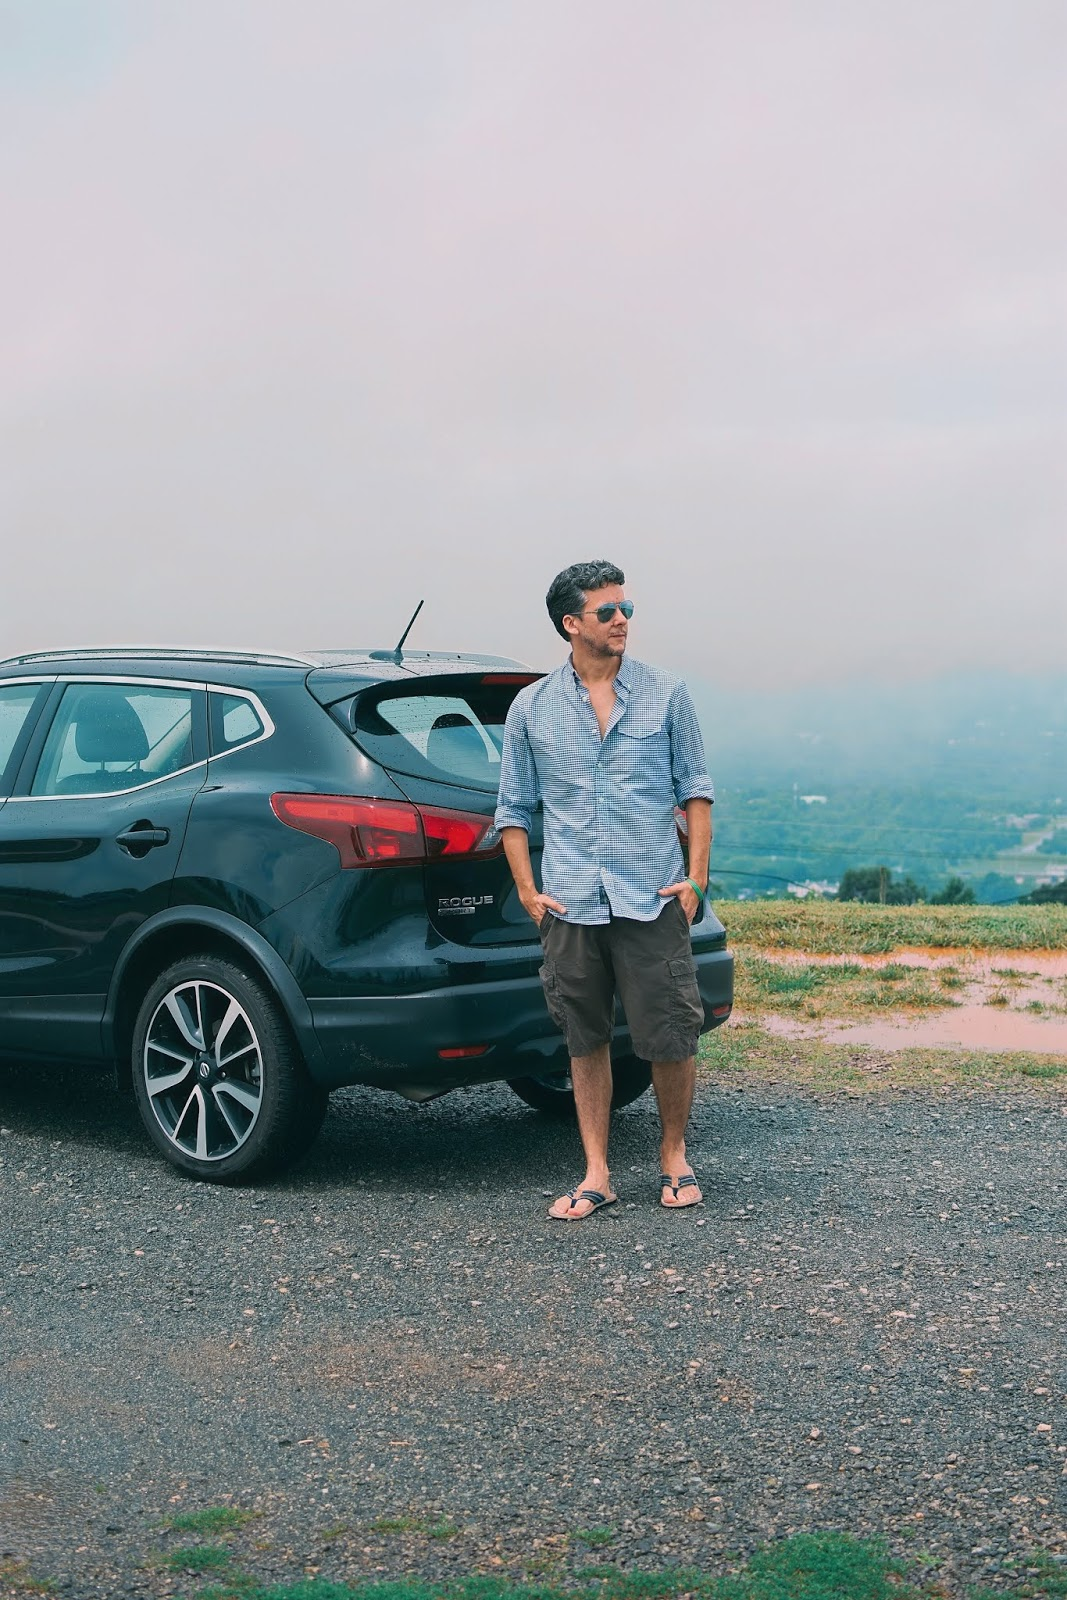 Road Trip With Nissan by Mari Estilo